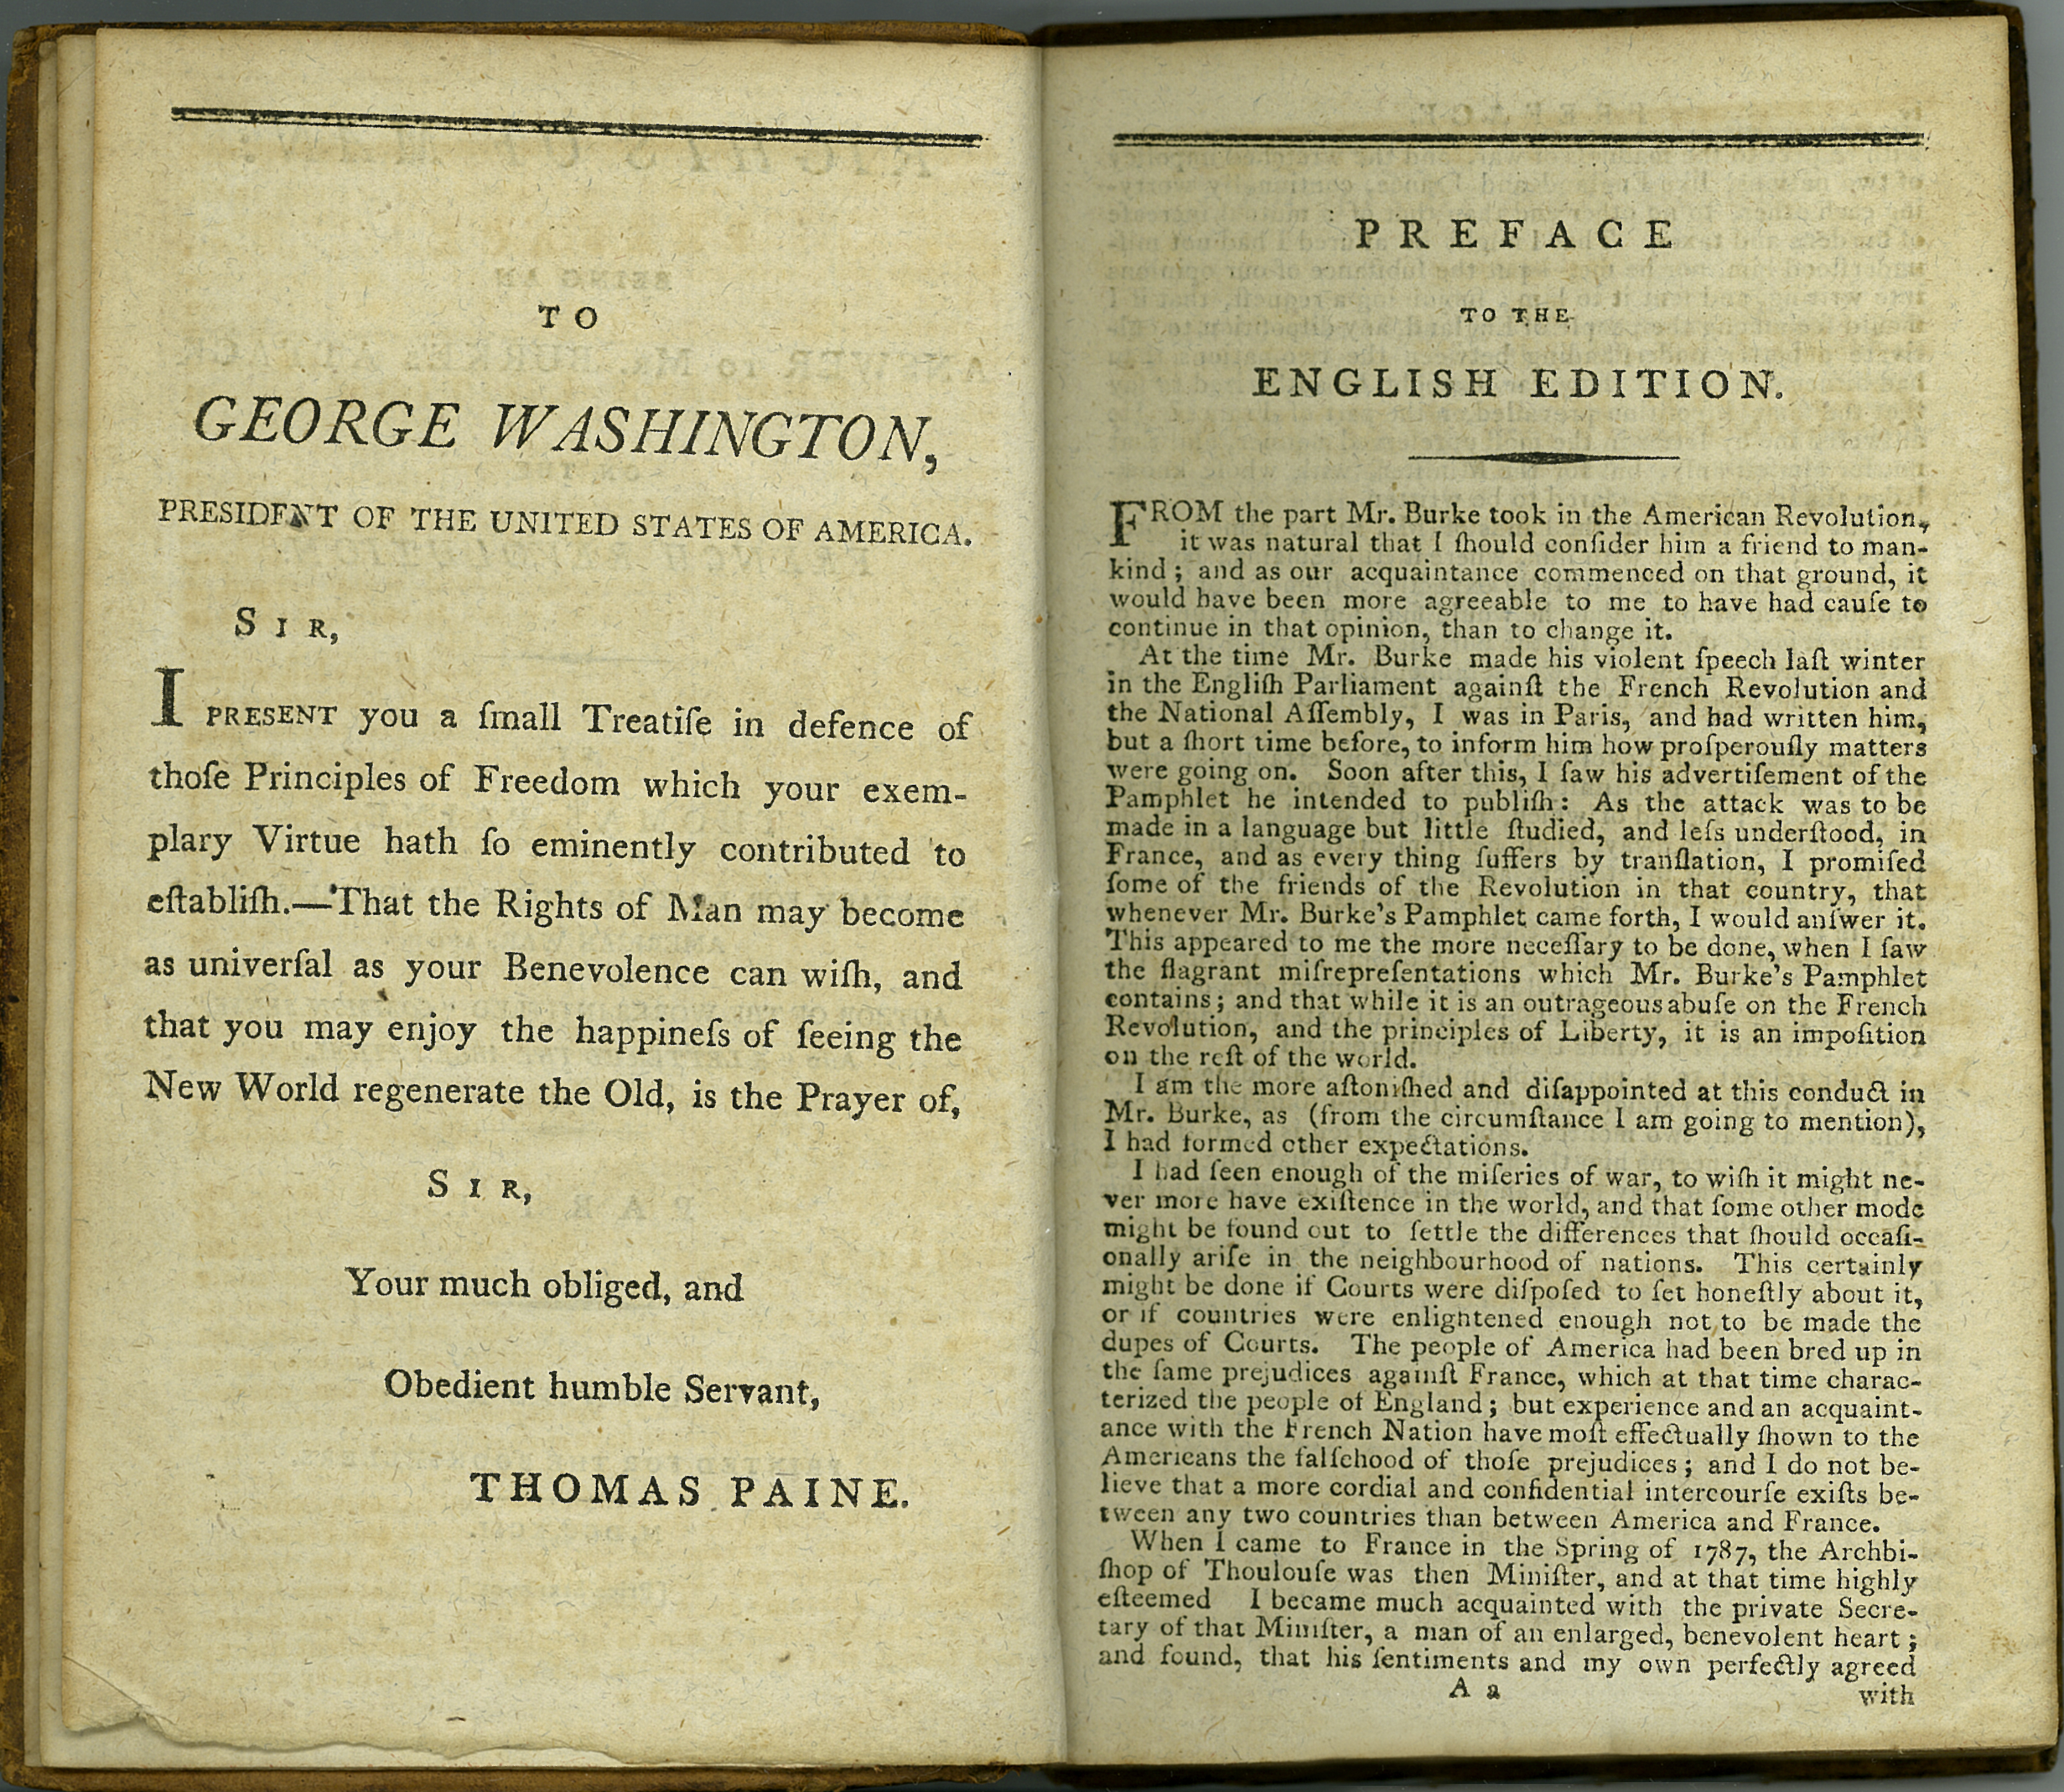 burke and locke on revolution essay Print item: an historical essay on the real character and amount of precedent of the revolution of 1688: in which the opinions of mackintosh, price, hallam, mr fox, lord john russell, blackstone, burke, and locke, the trial of lord russell, and the merits of sidney, are critically considered (v1.